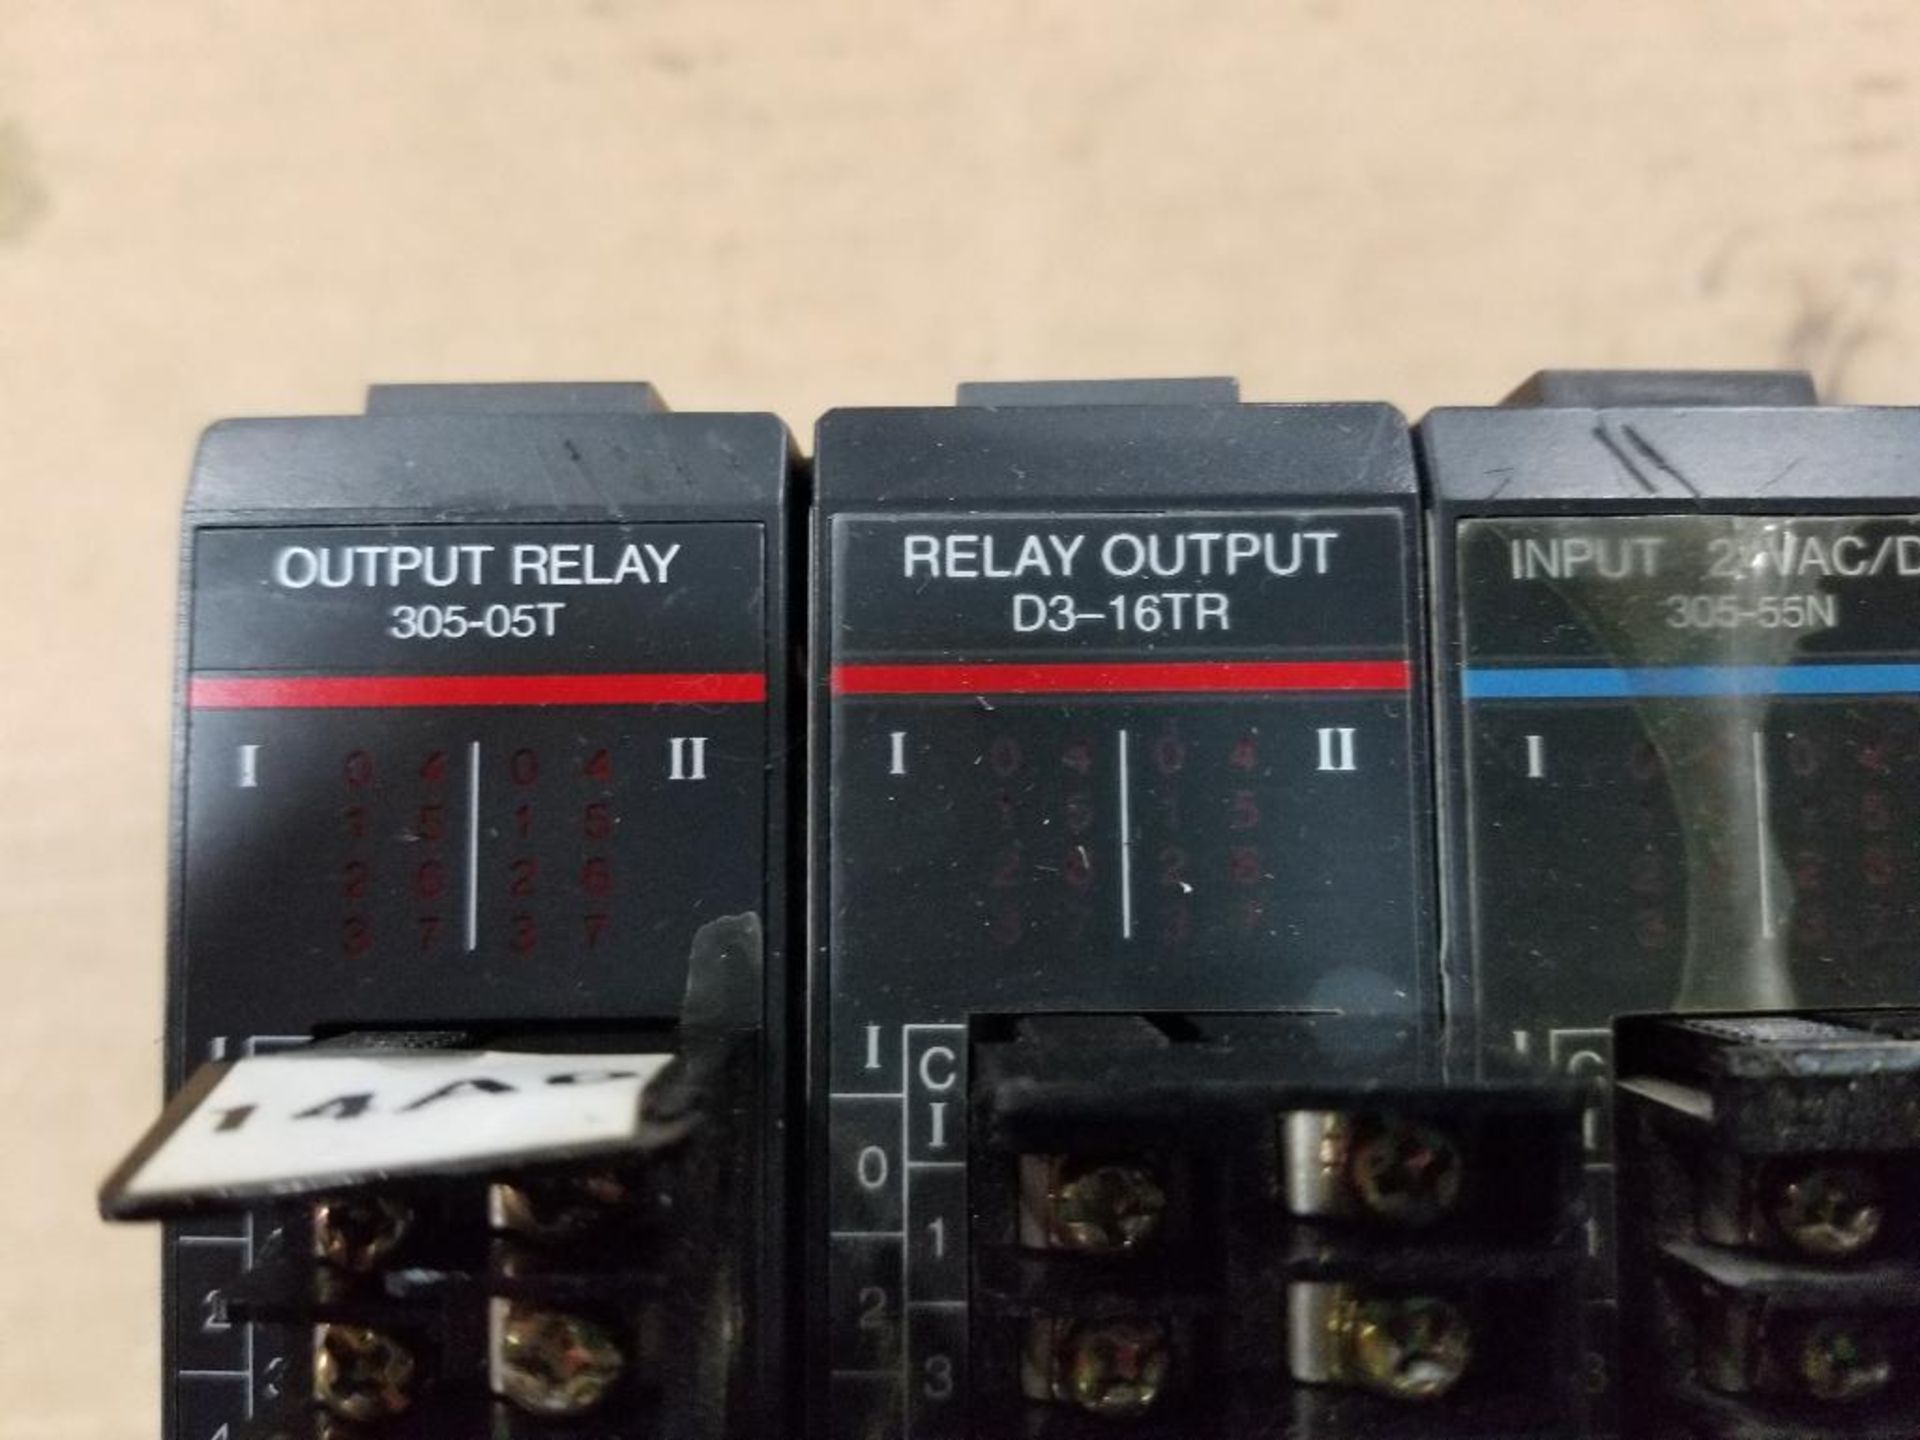 Siemens SIMATIC TI305DC02b Programmable Controller unit. DL330 CPU. - Image 5 of 6